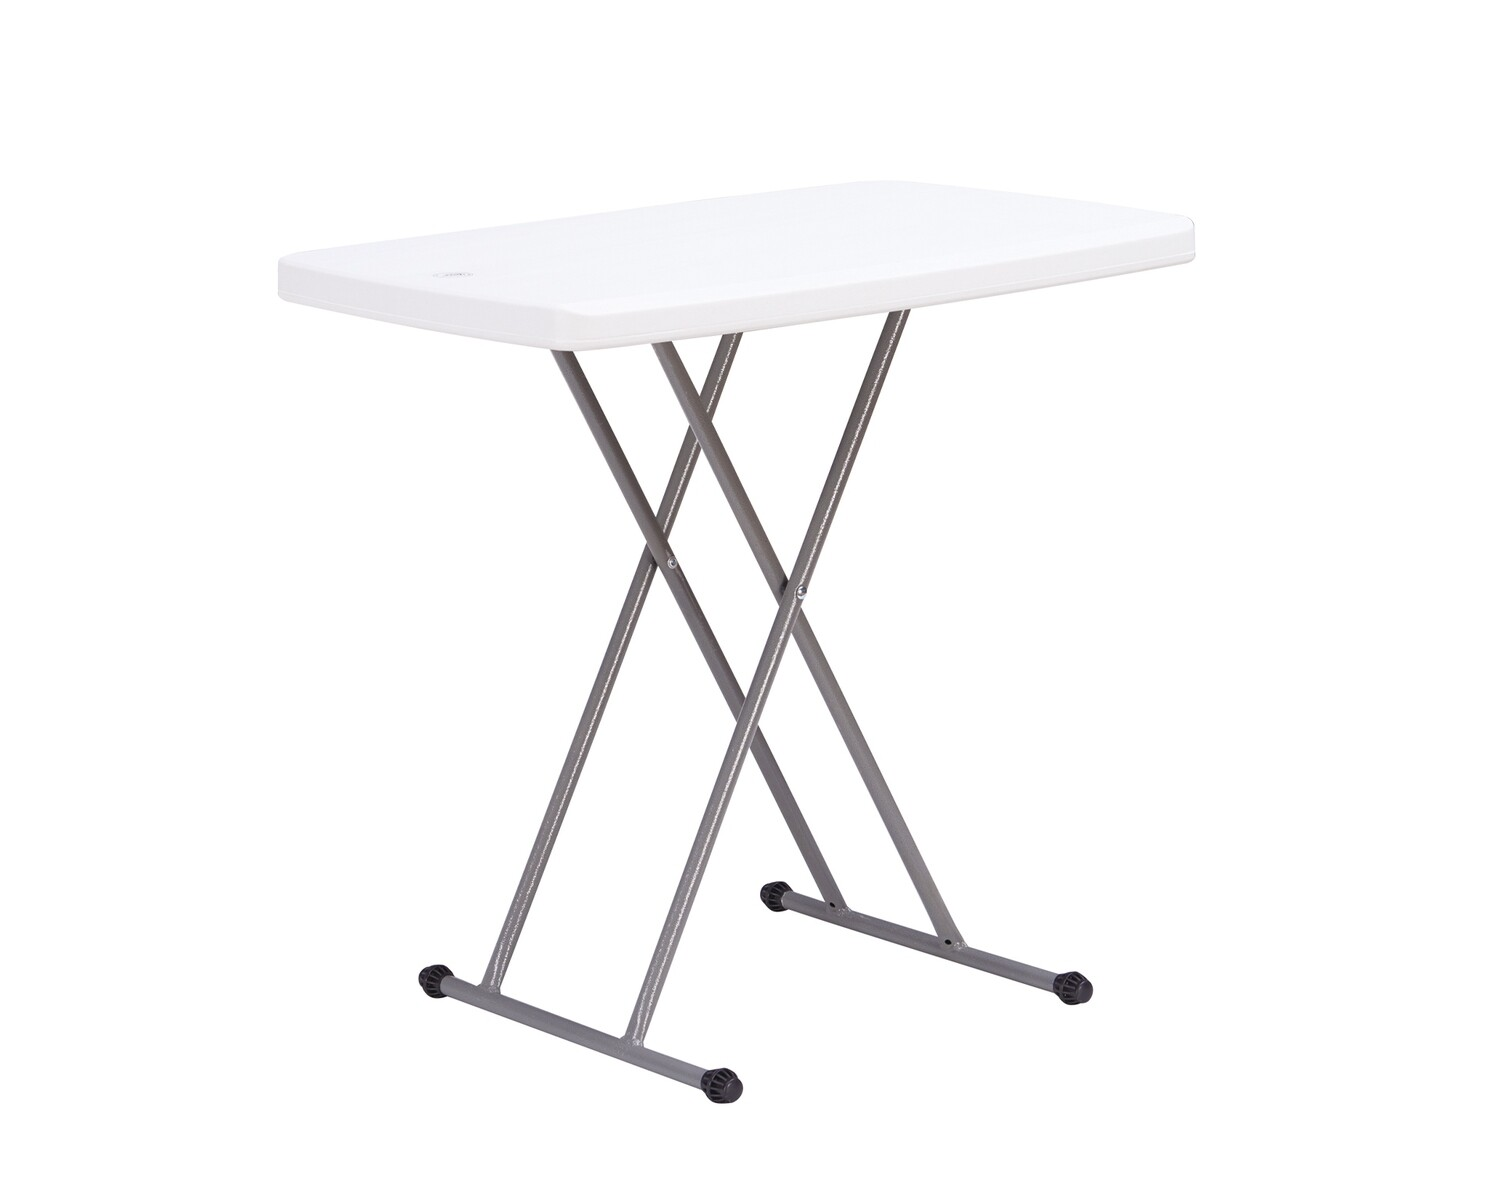 Ofix 2.5FT Height Adjustable Table (White)